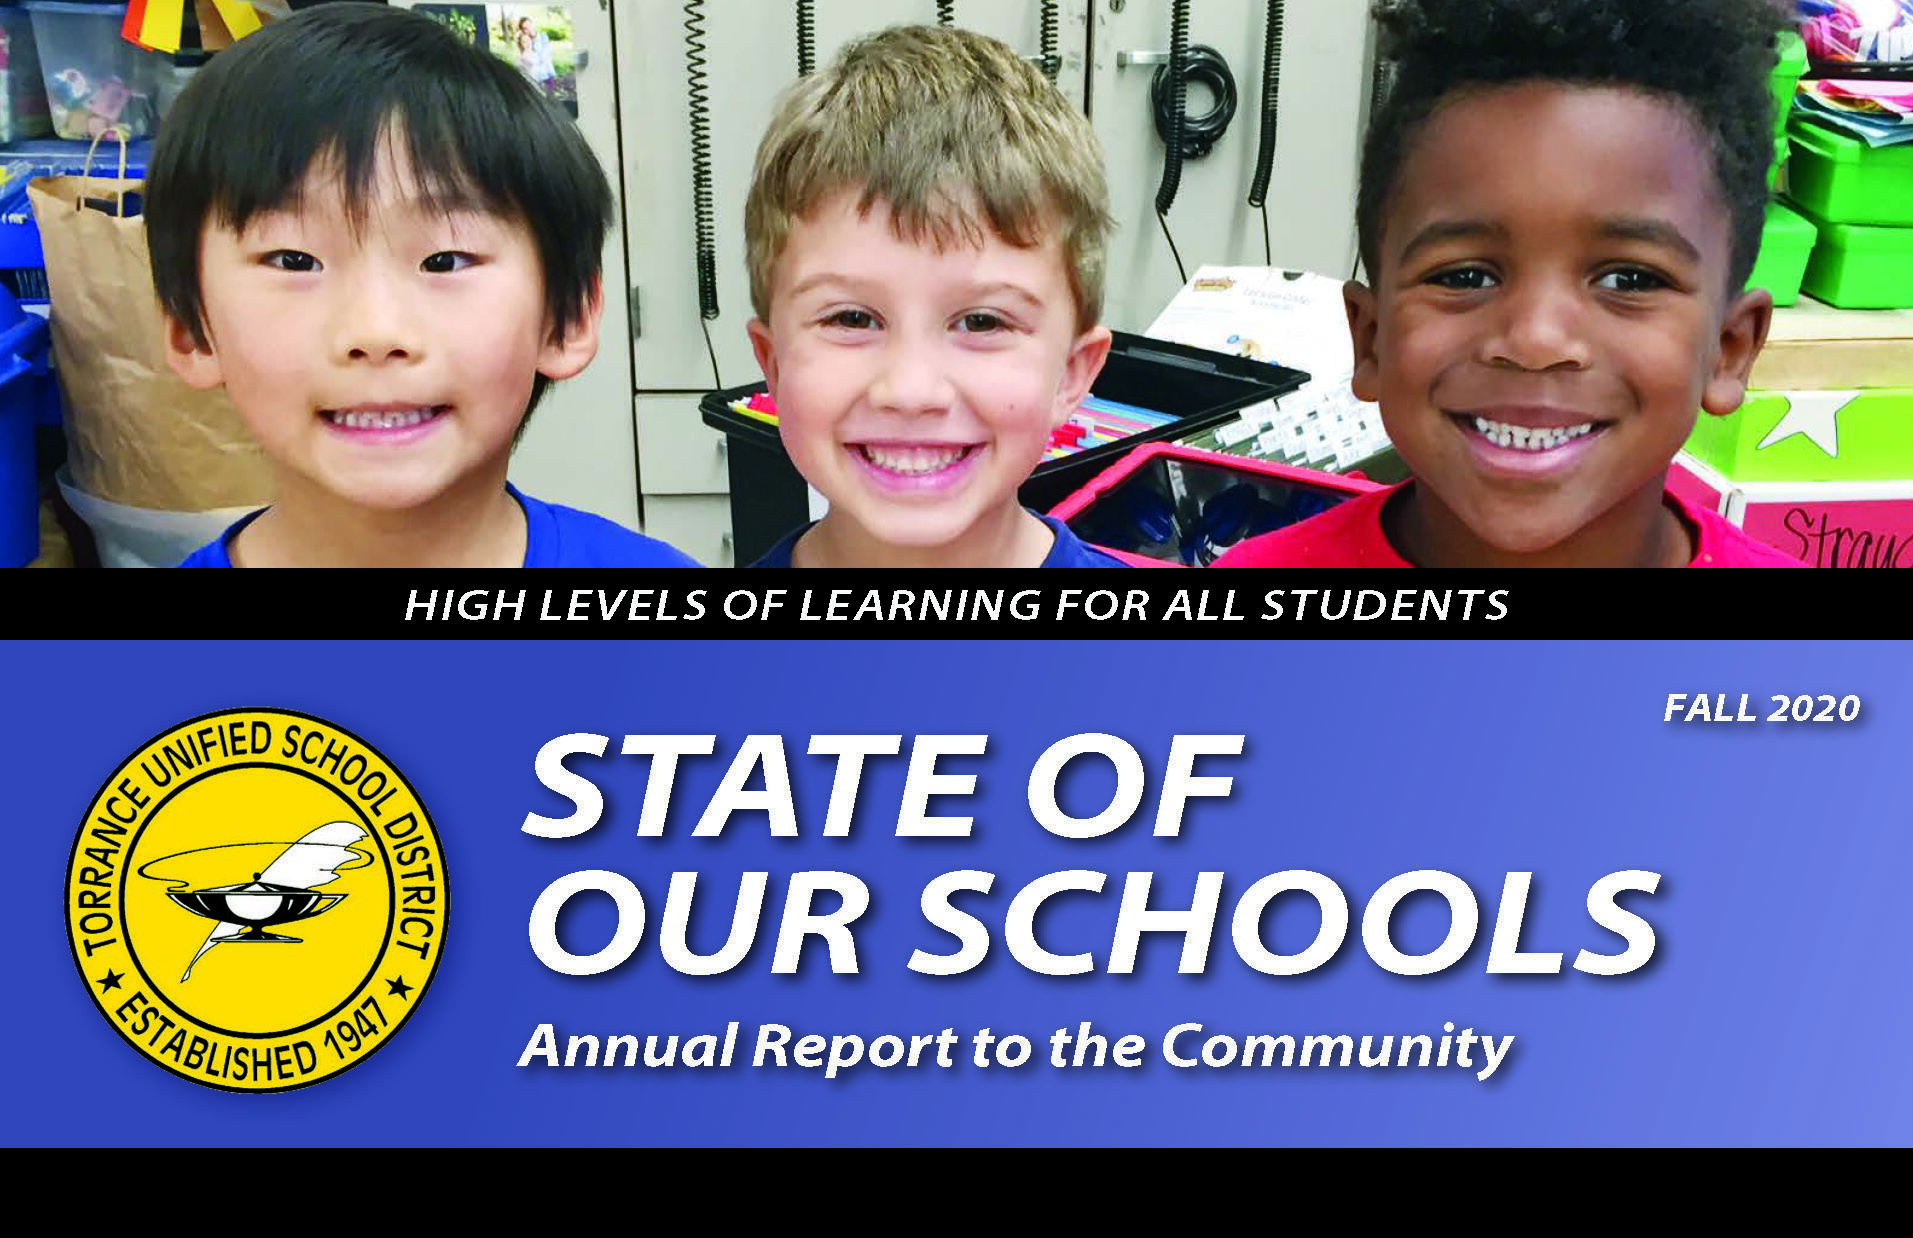 State of Our Schools Annual Report to the Community